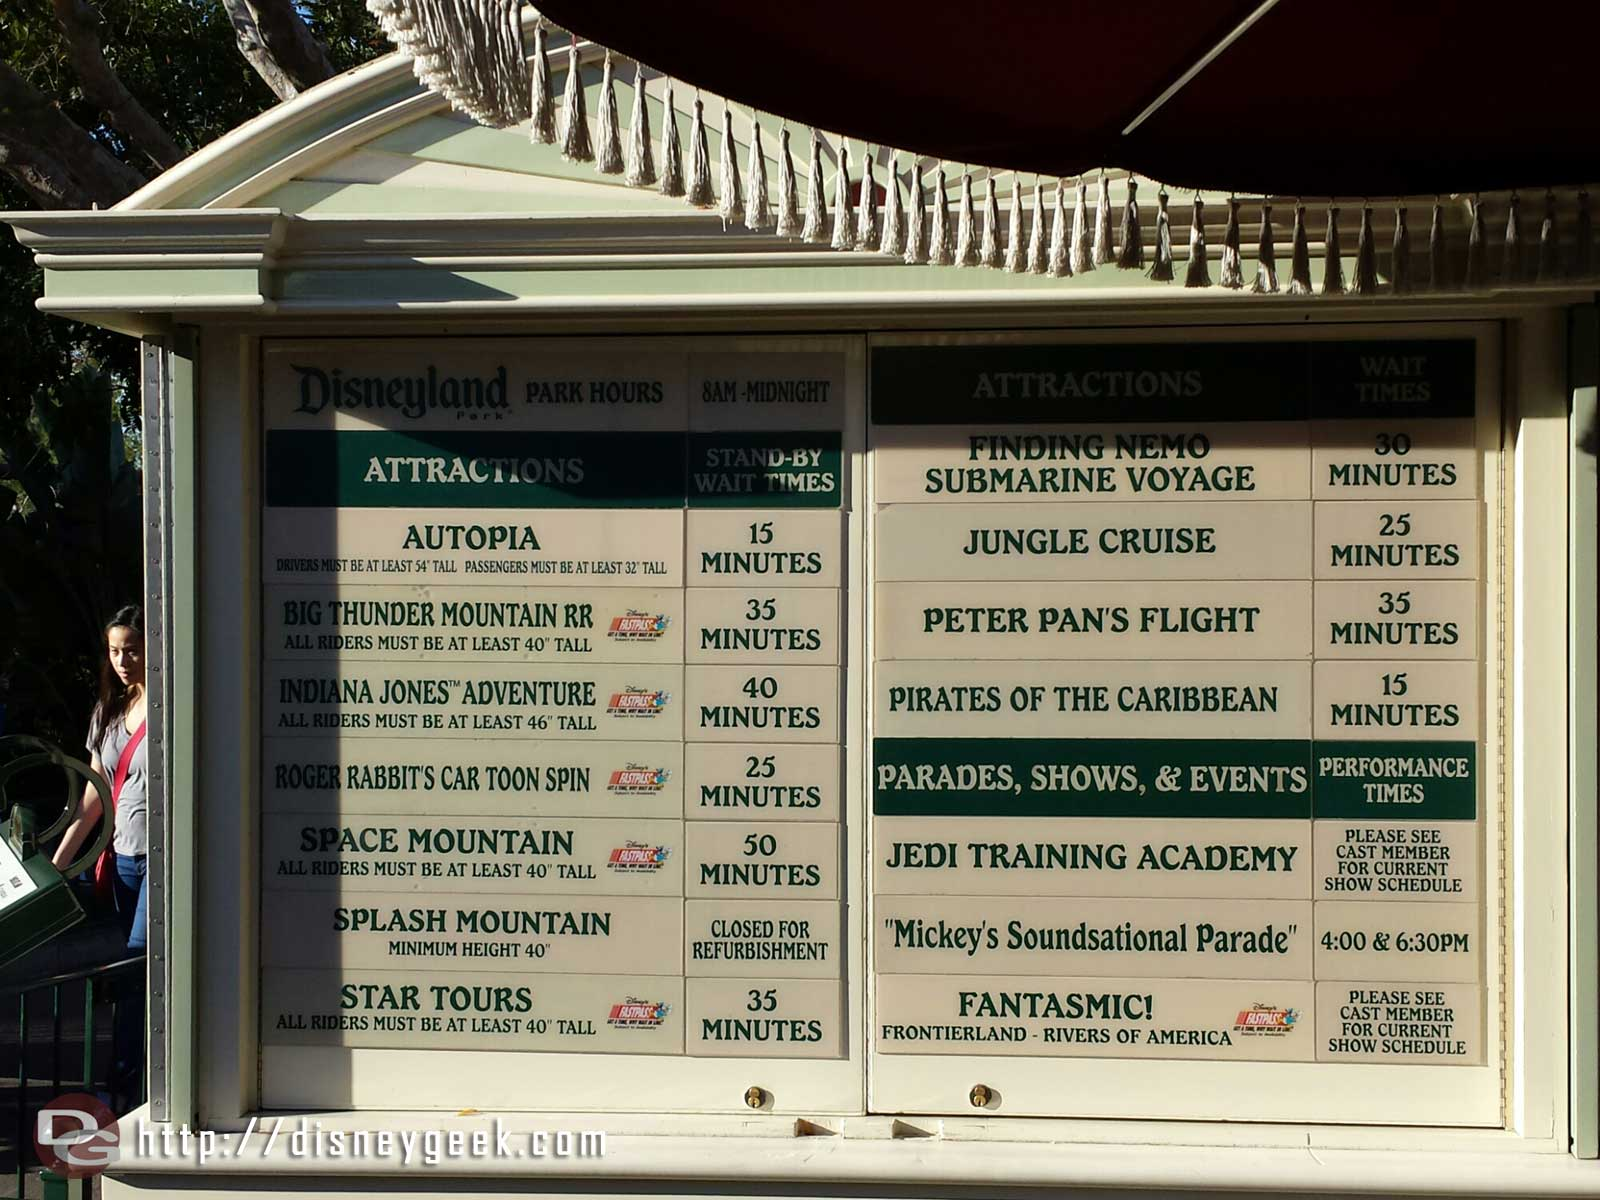 #Disneyland waits as of 3:10pm